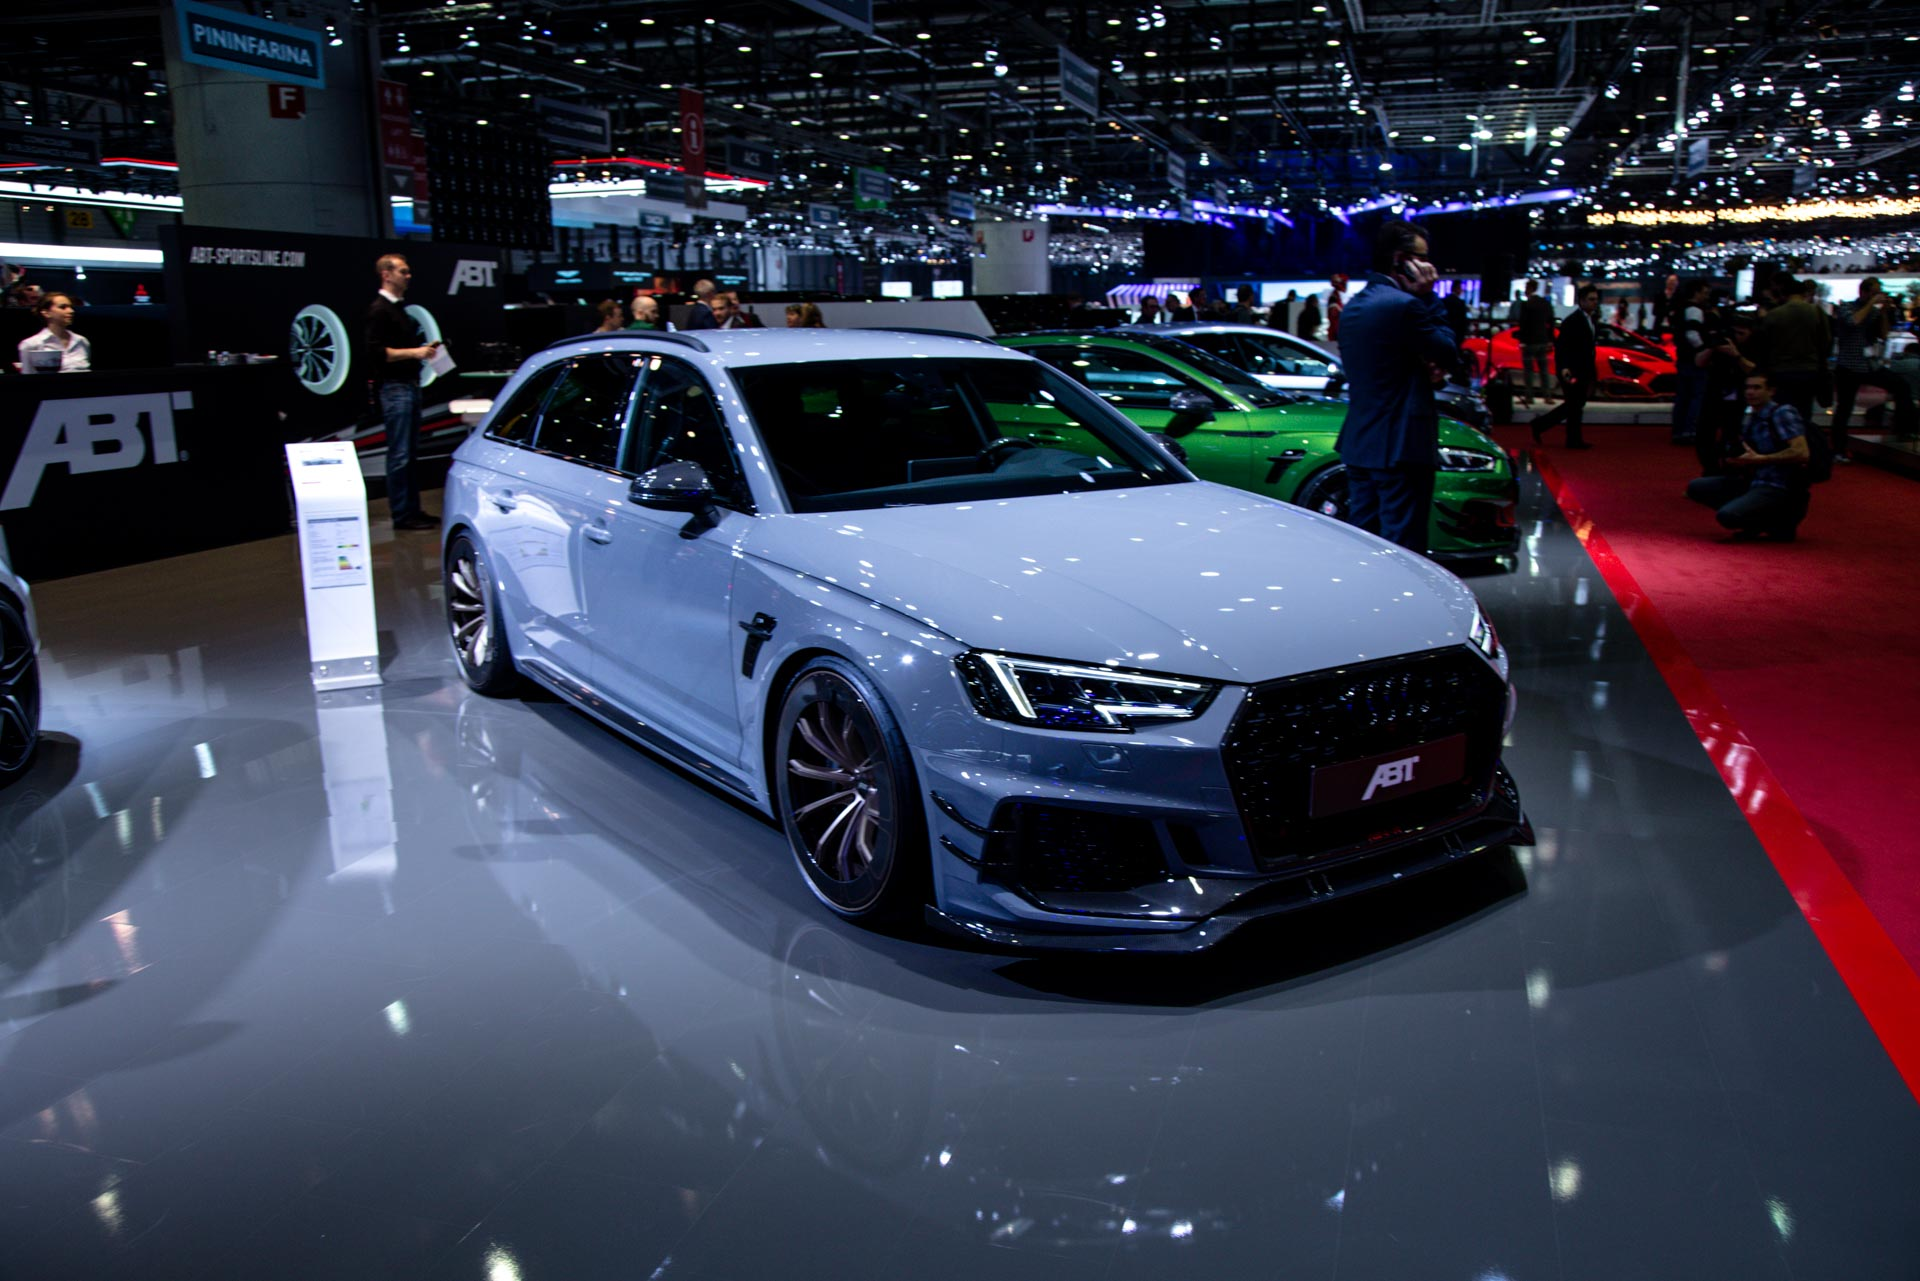 Abt At The Geneva Motor Show 2018 Gtspirit